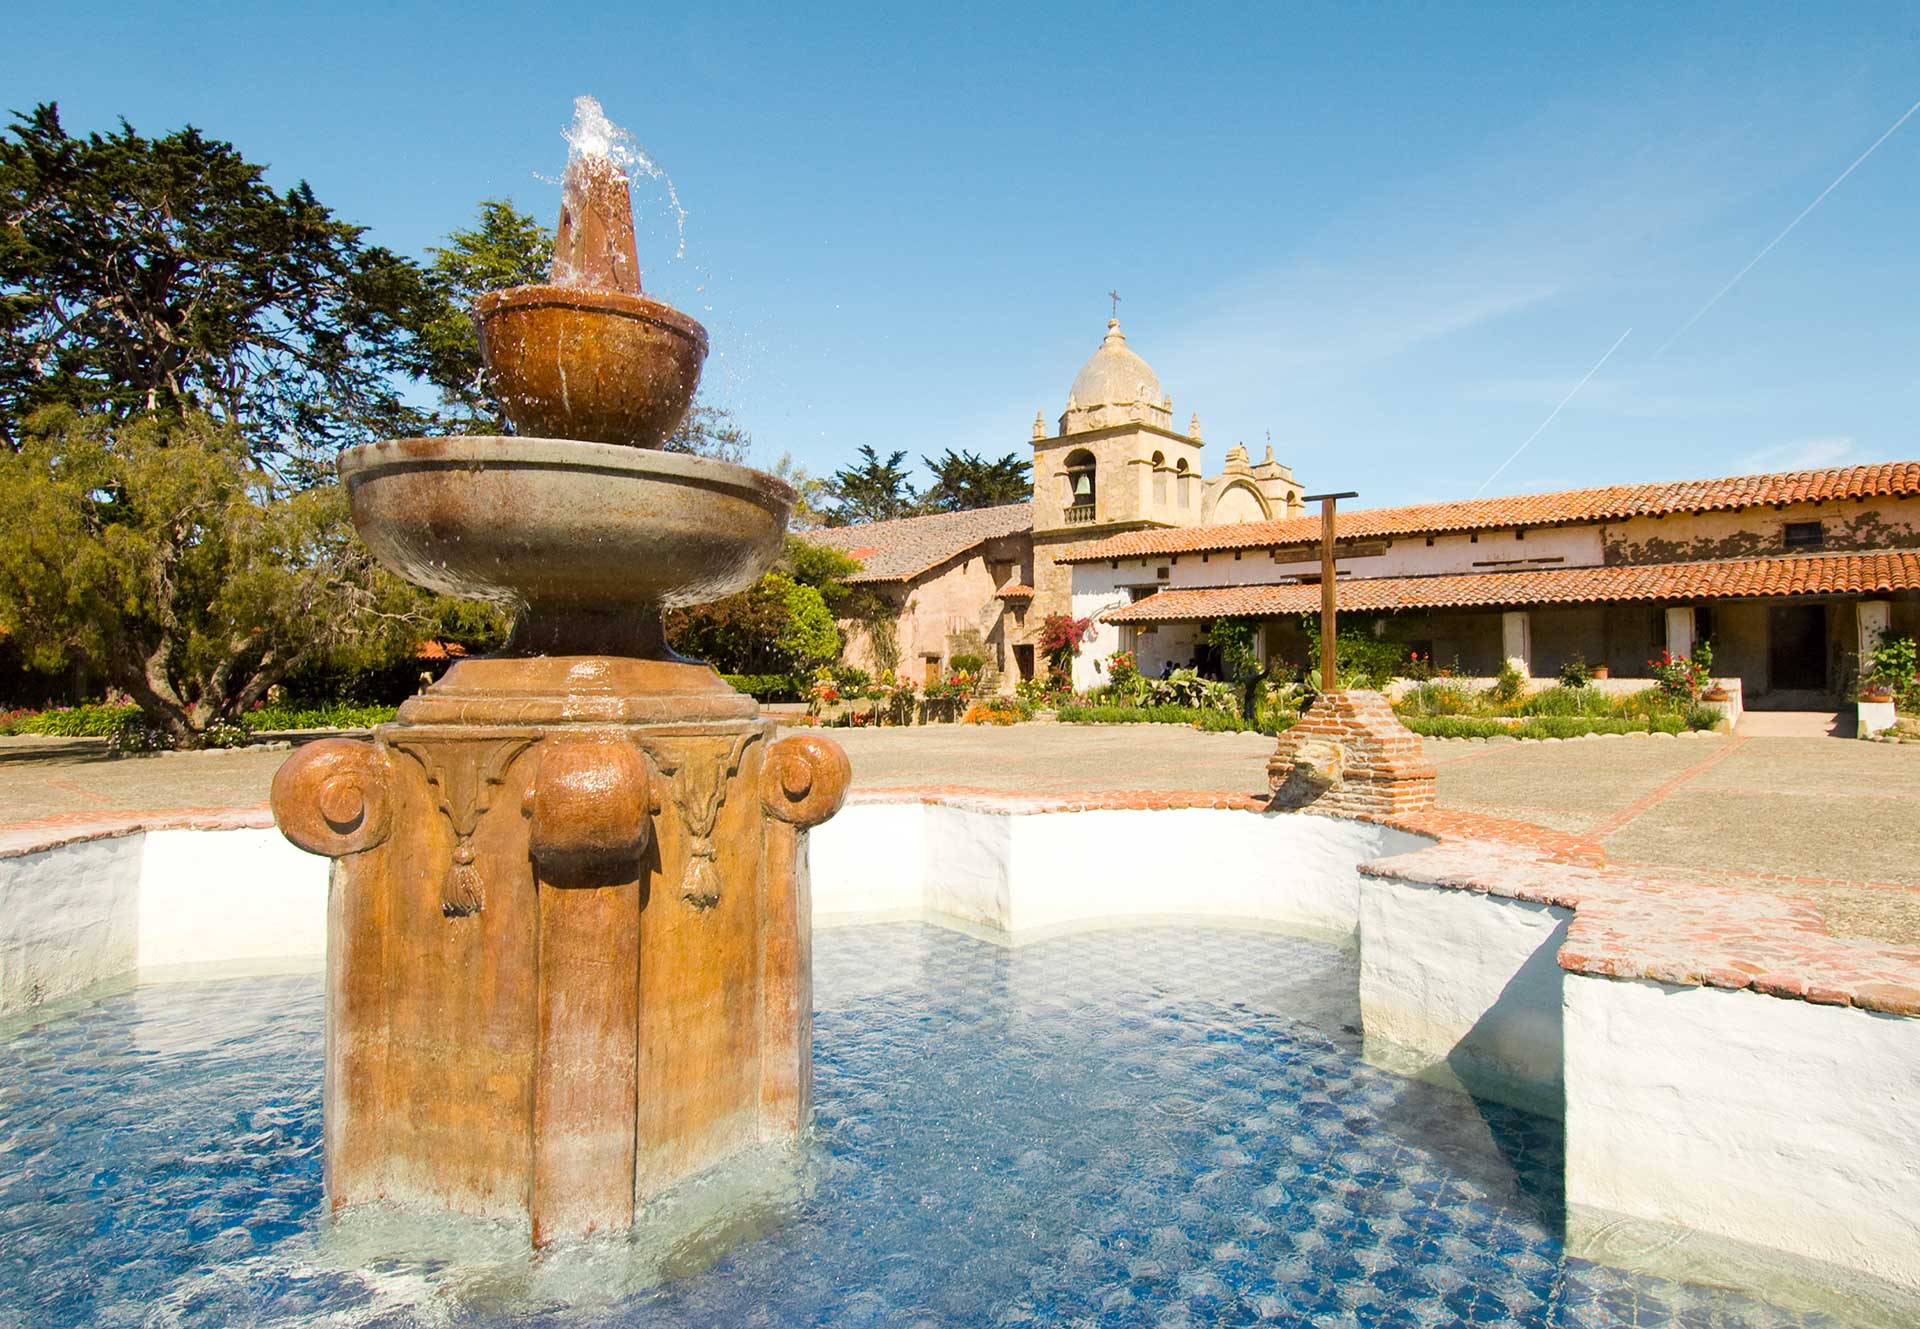 Attractions - Carmel Mission Basilica